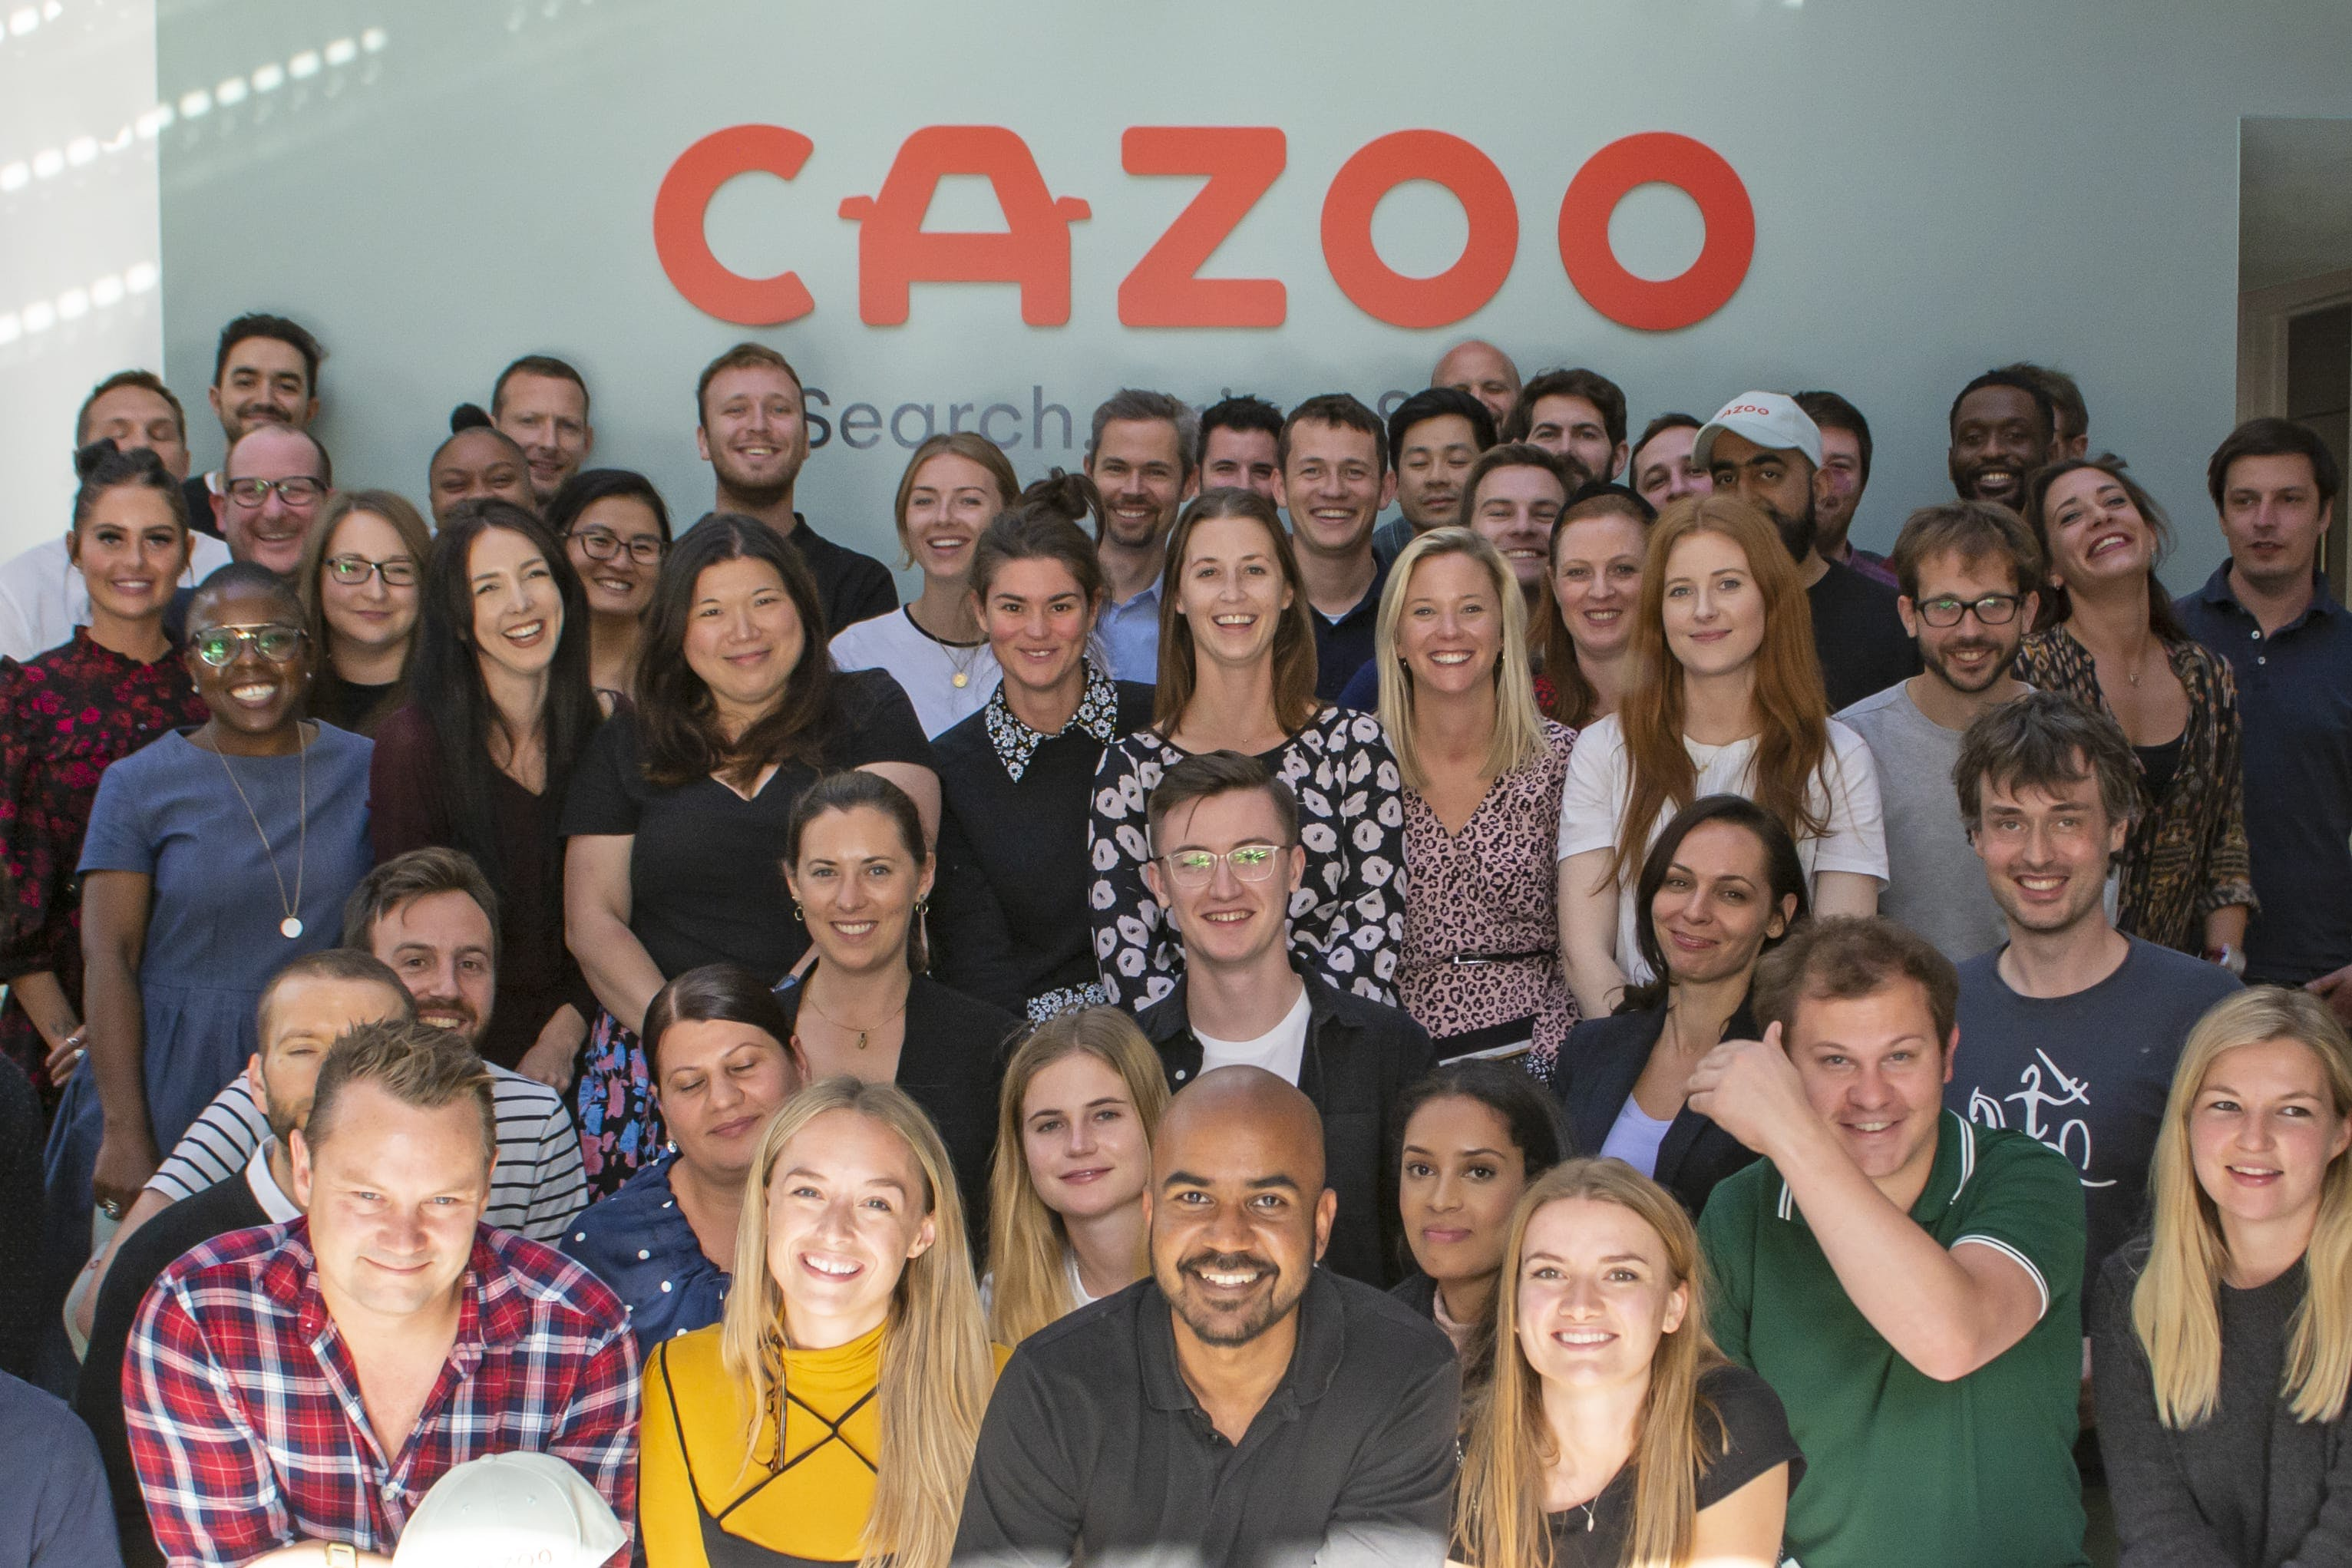 The Cazoo team in one of their London offices